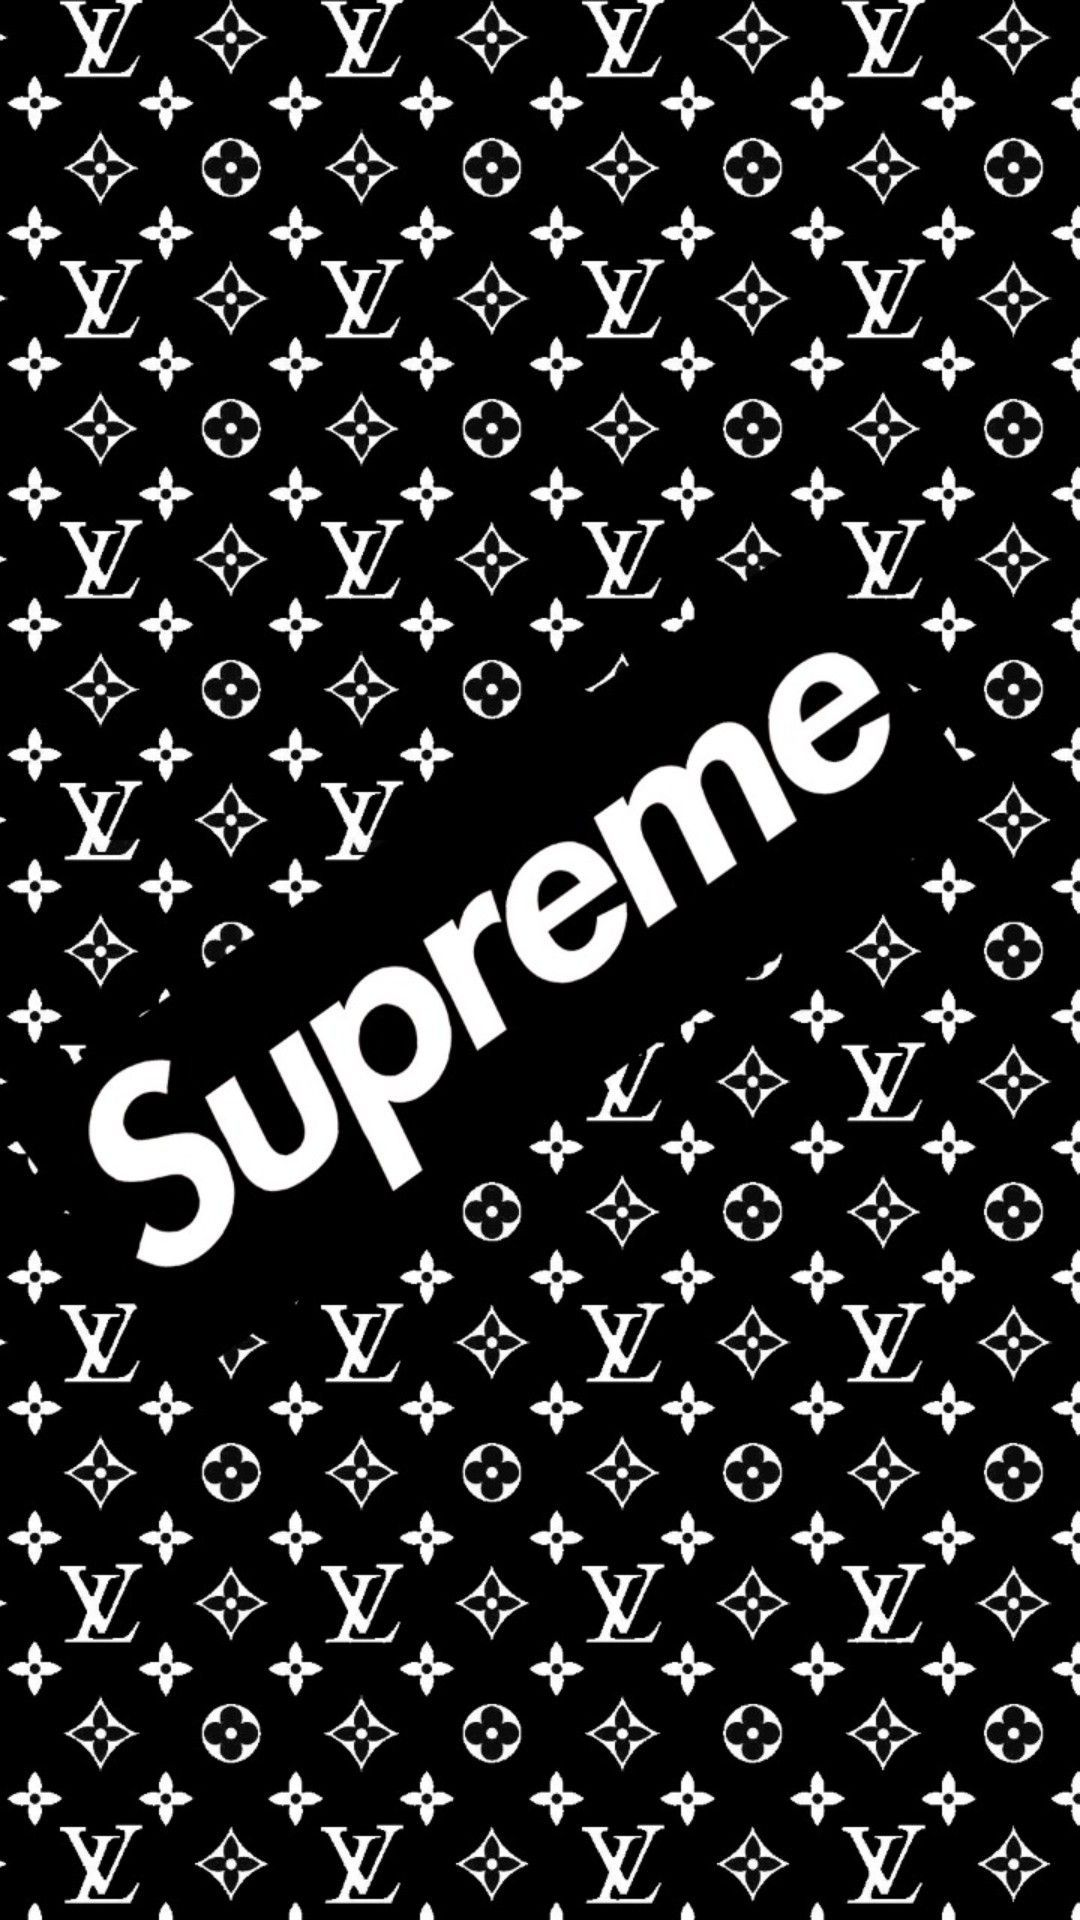 Supreme Wallpaper Home Screen In 2020 Supreme Wallpaper Supreme Wallpaper Hd Supreme Iphone Wallpaper